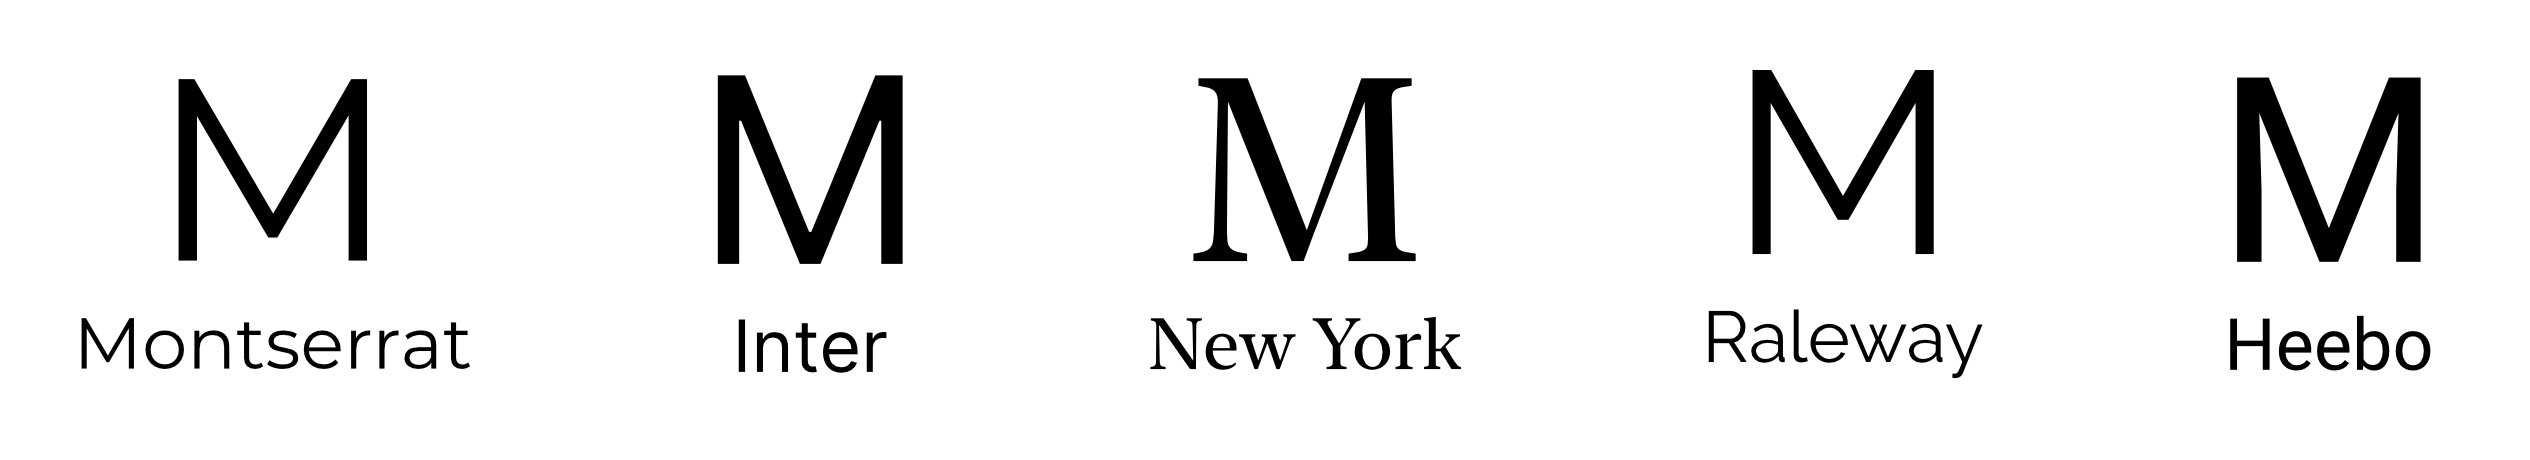 five different capital letters M in different fonts